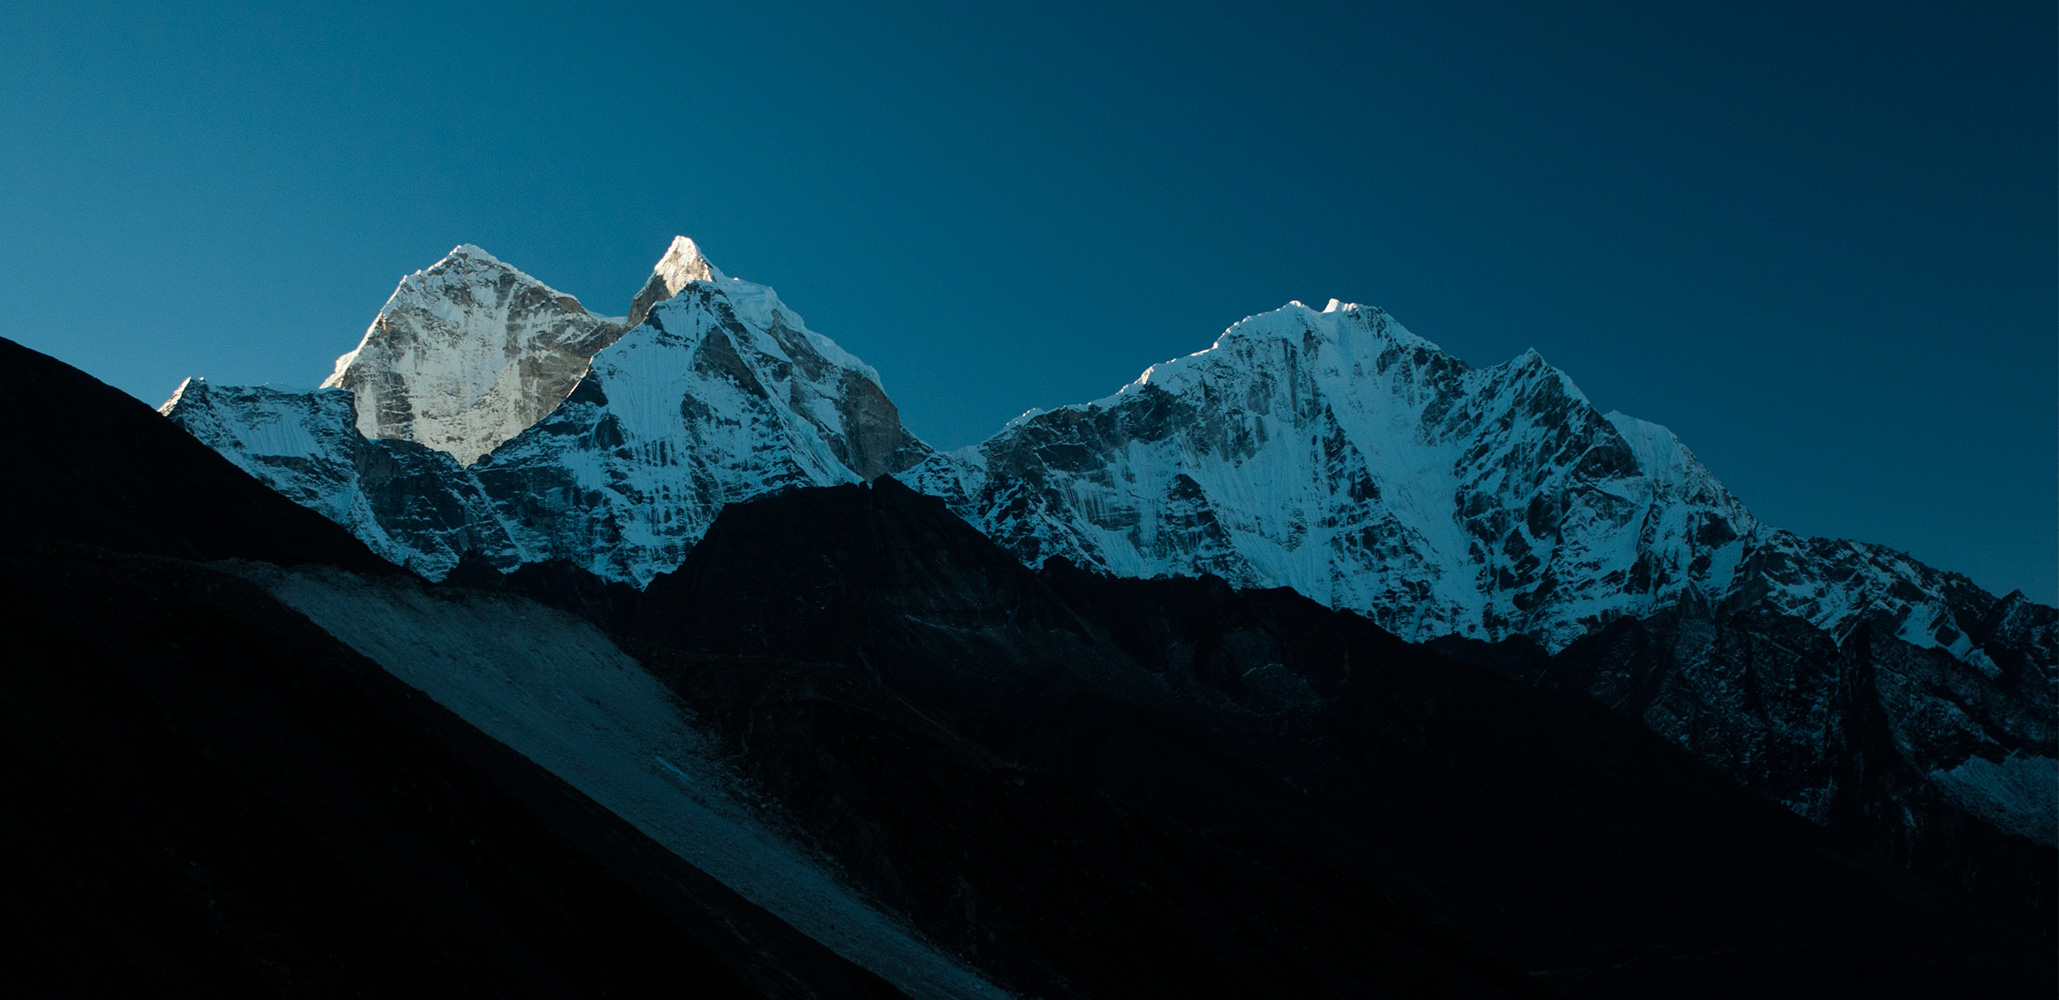 A view back down the Imja Khola valley at sunset to these fabulous peaksNikon D300, 180mm. November 2008